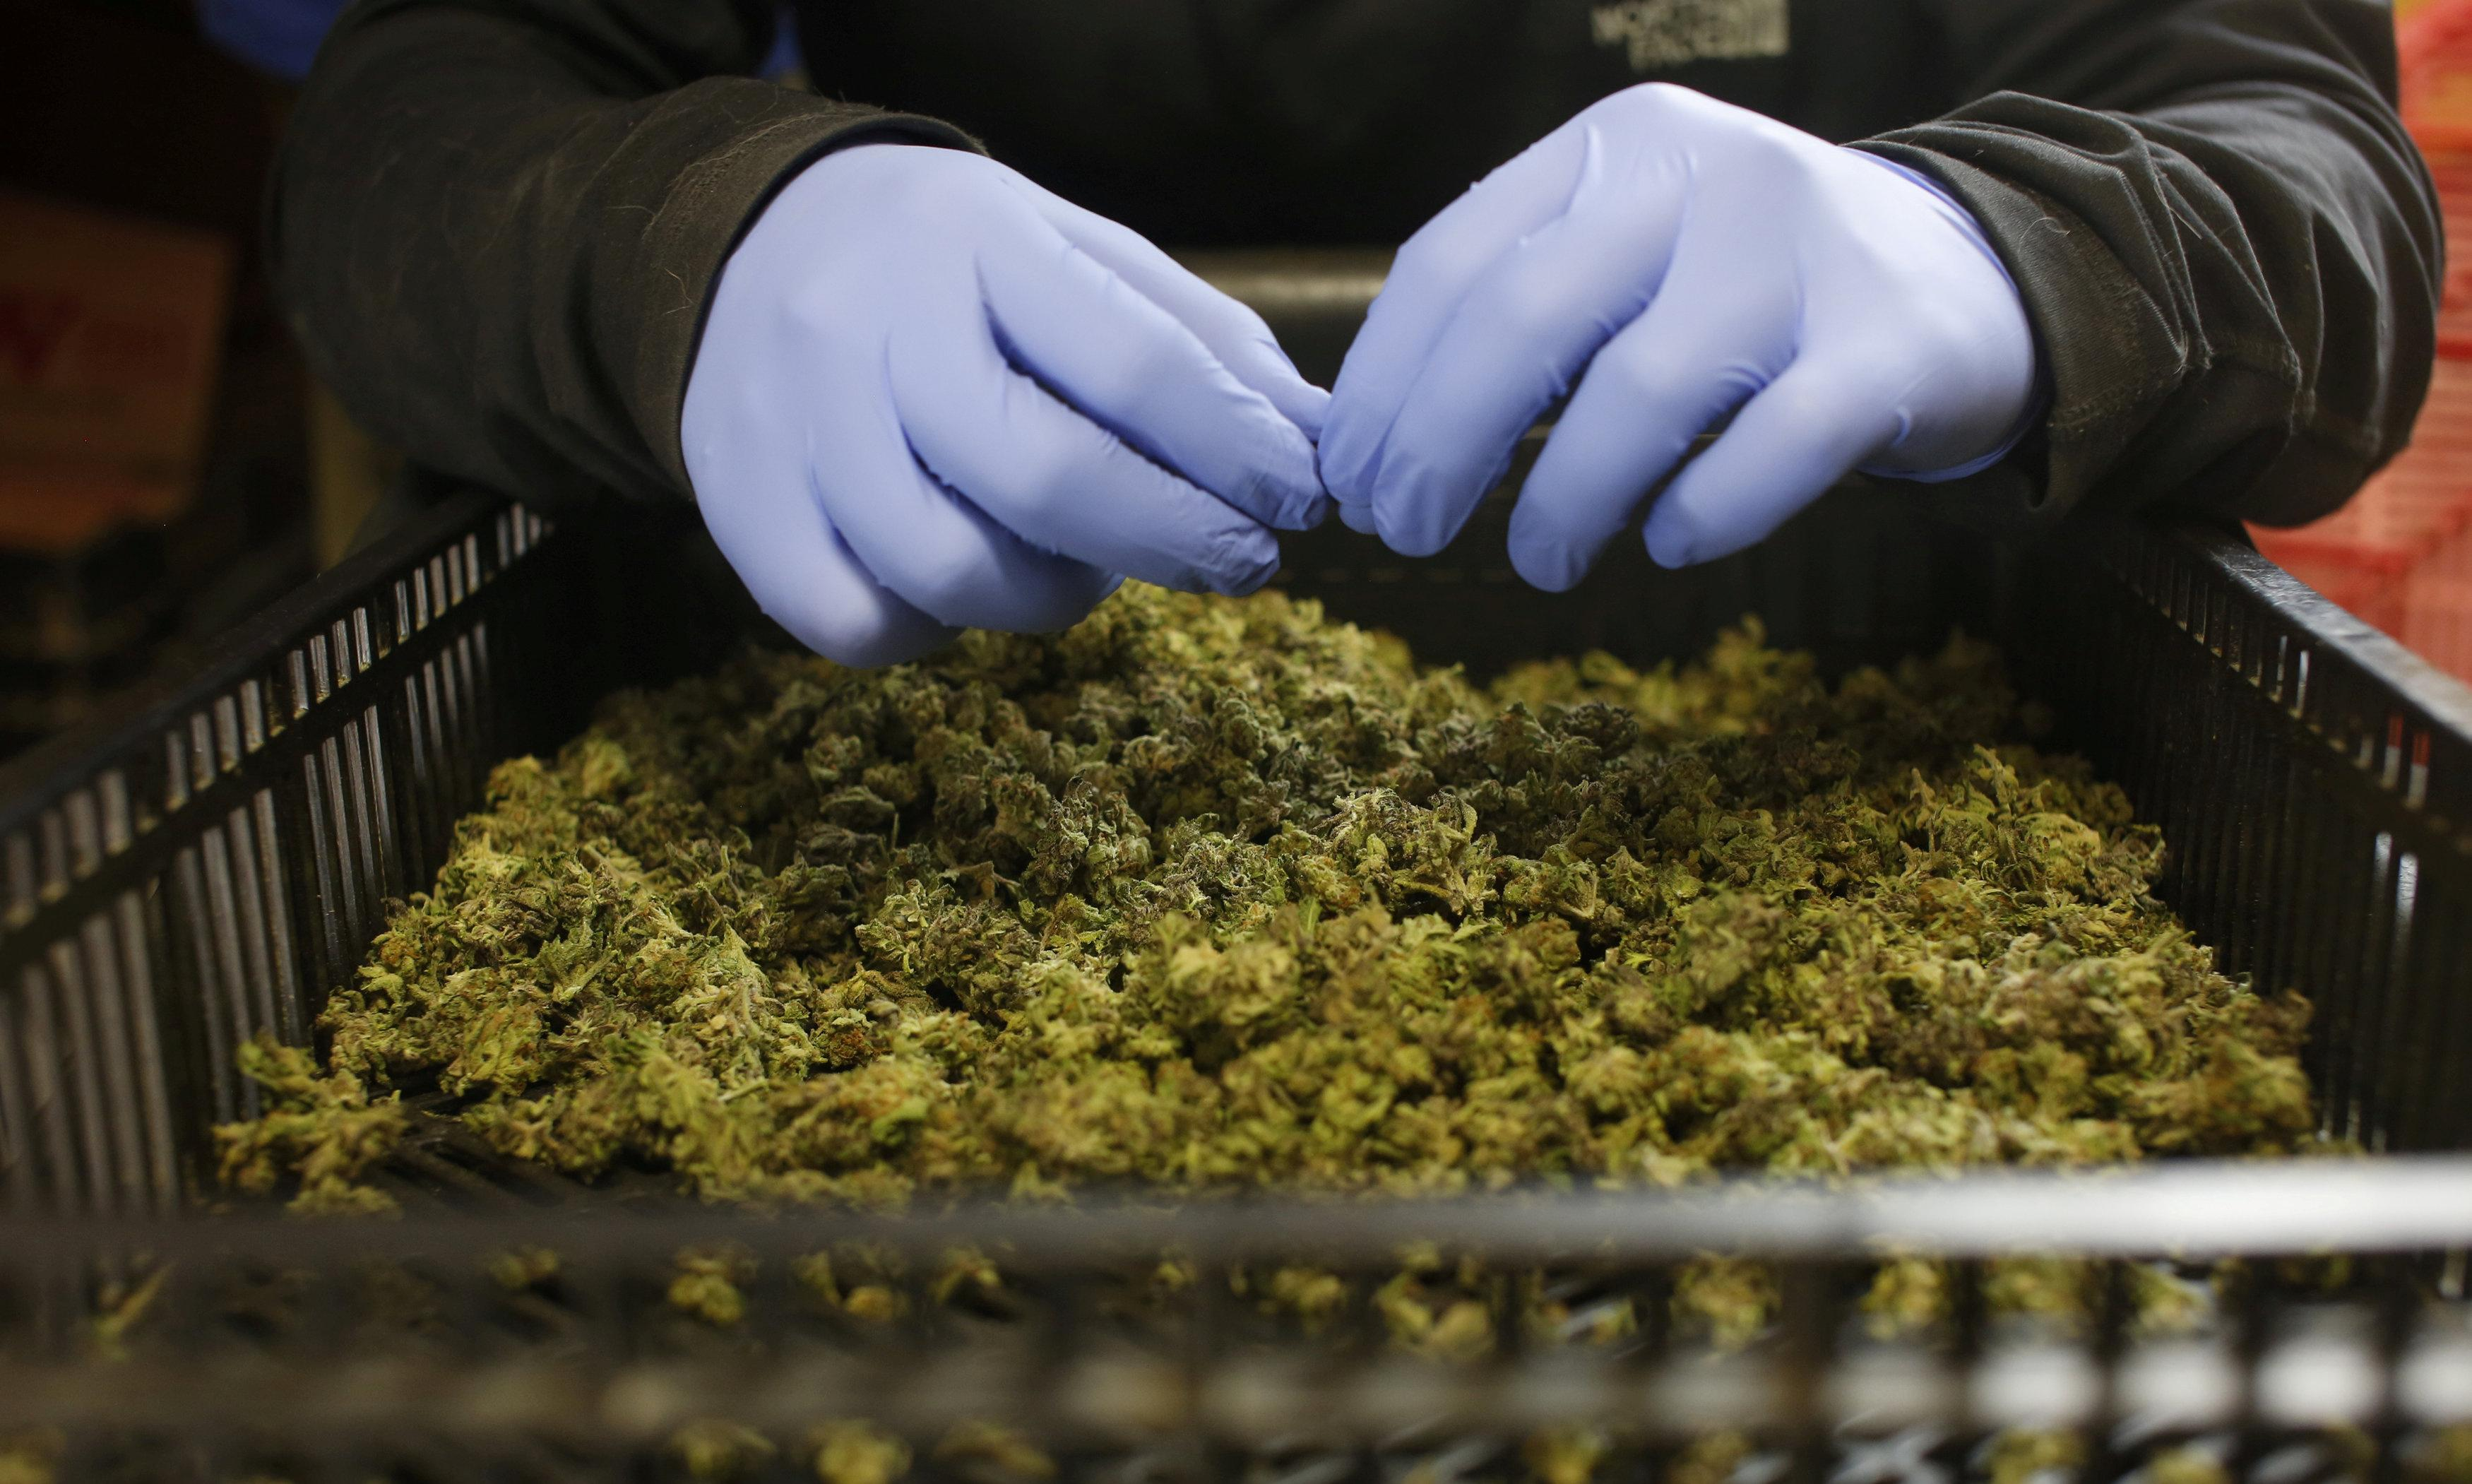 New Zealand passes laws to make medical marijuana widely available